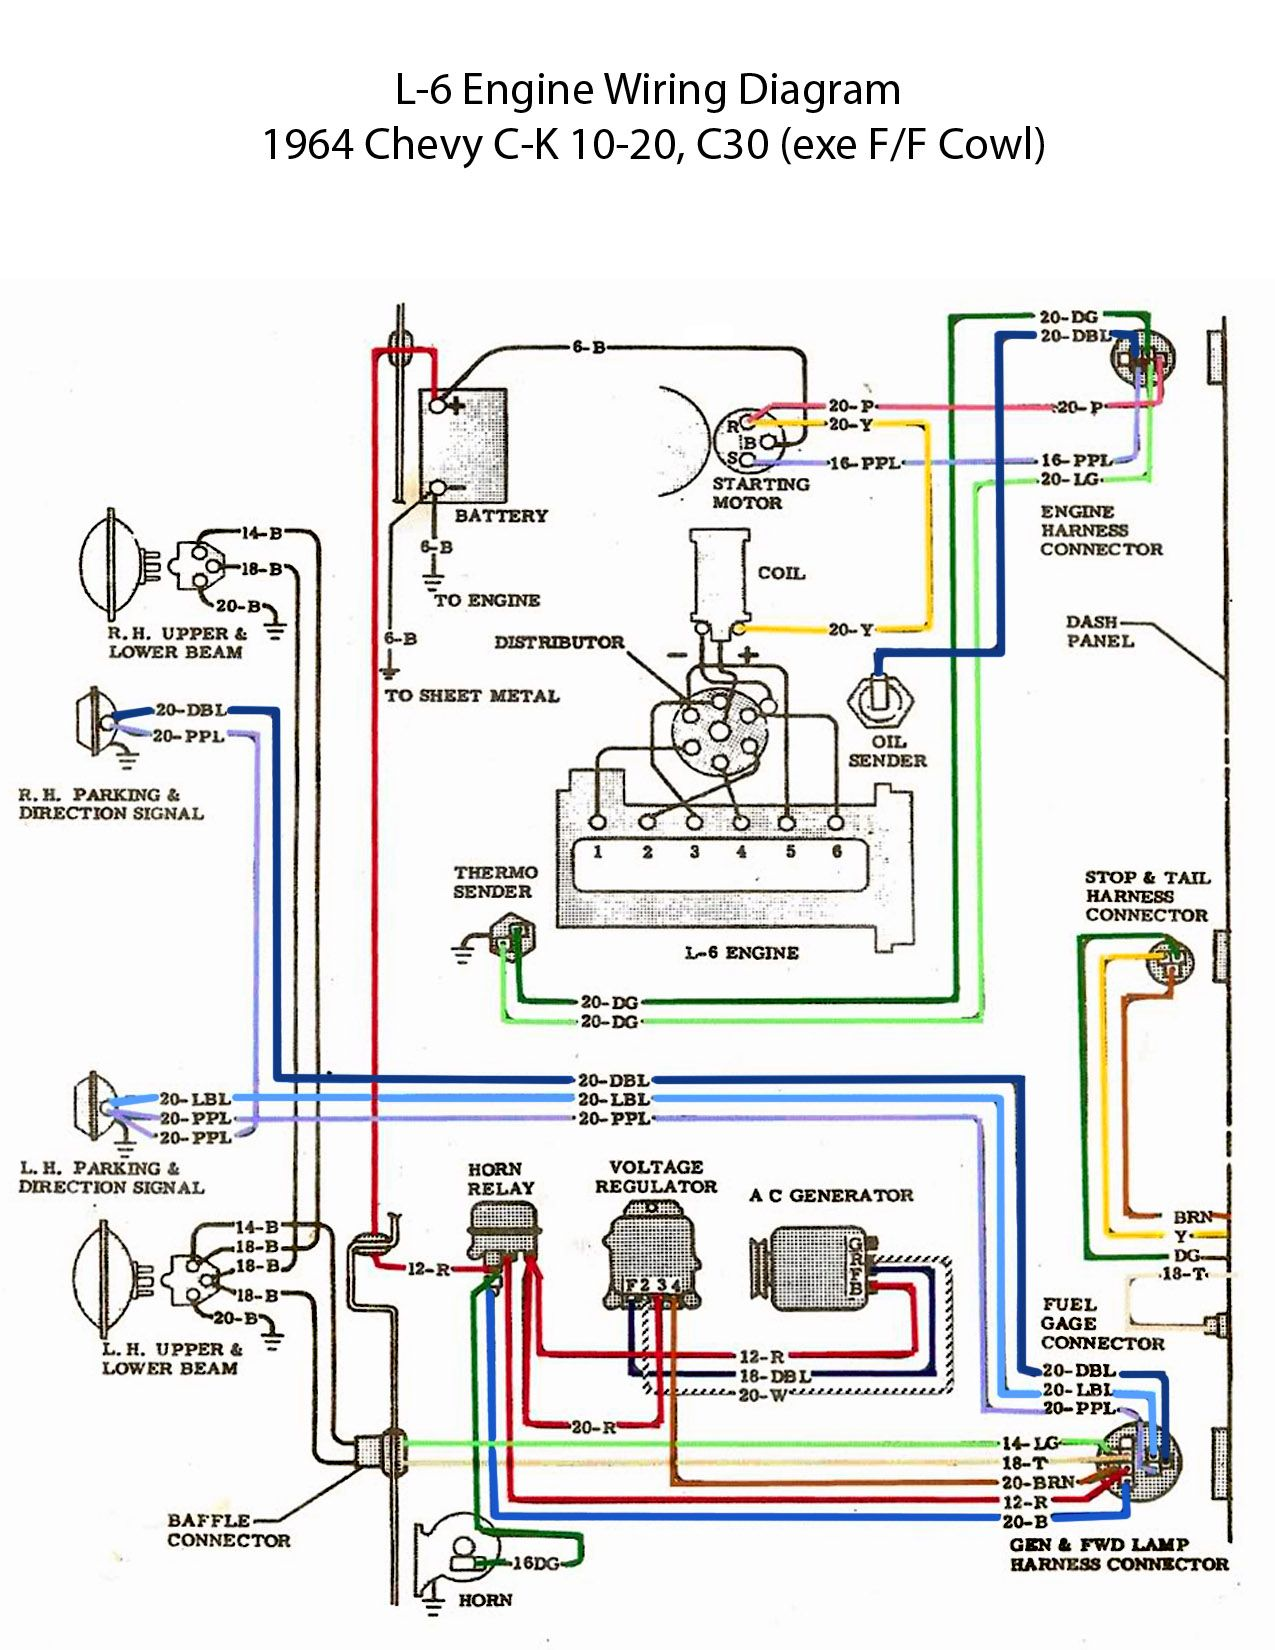 electric l 6 engine wiring diagram 60s chevy c10 wiring rh pinterest com  Chevy Mini Starter Wiring Diagram 283 Chevy Engine Diagram